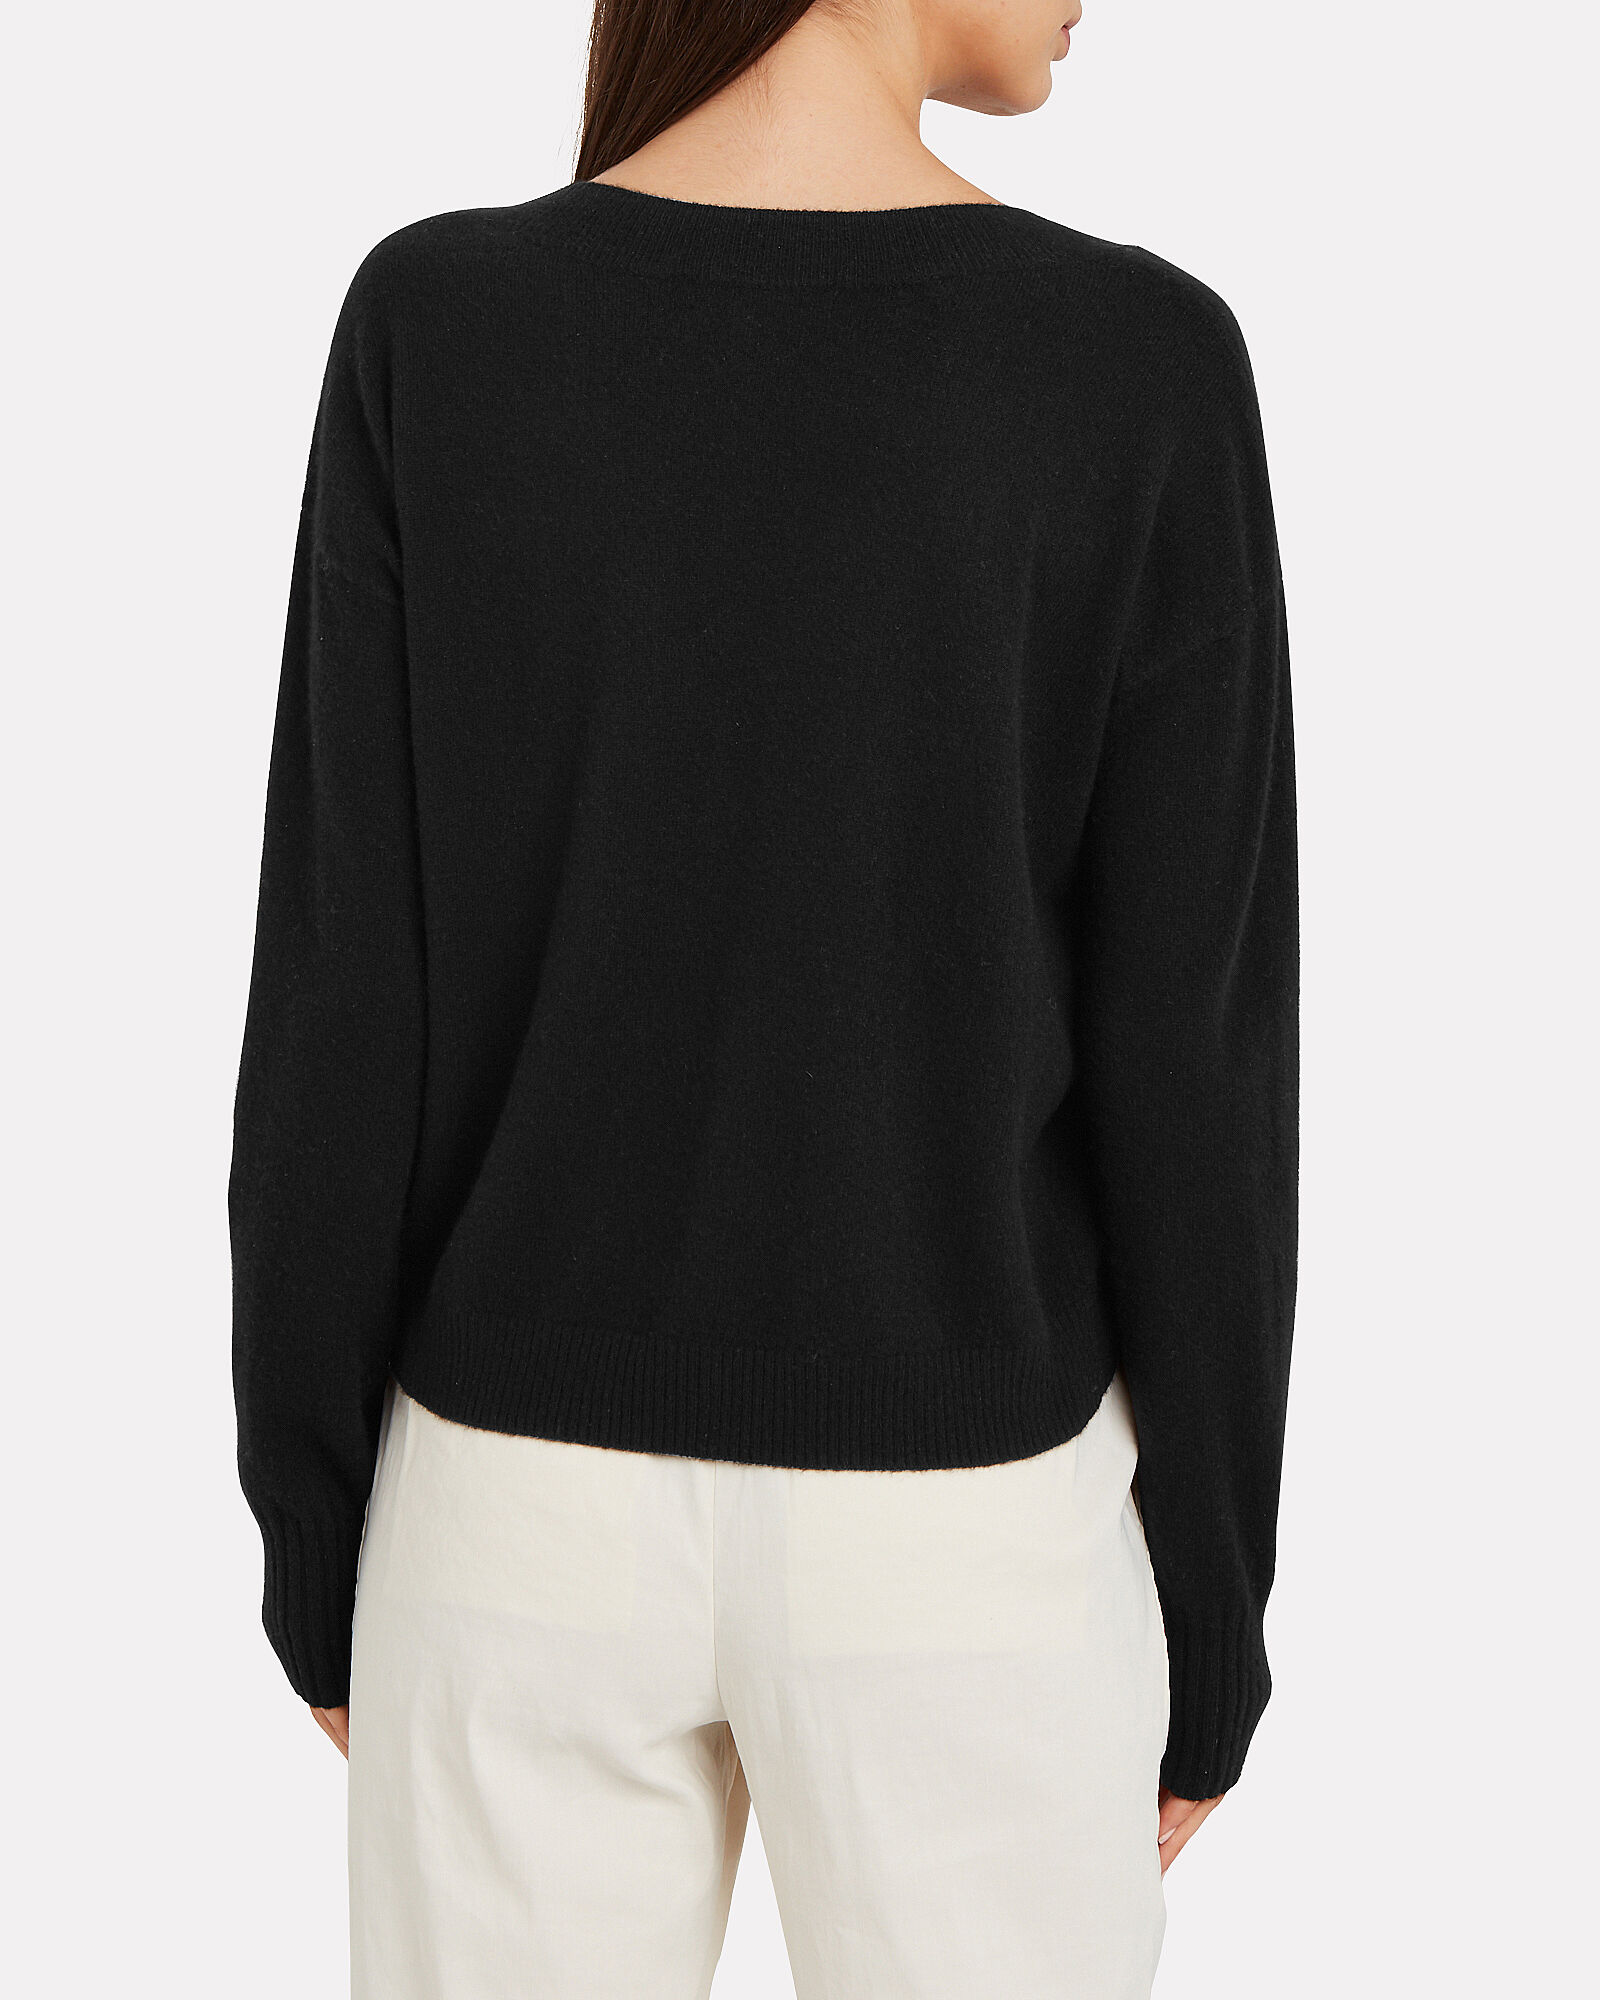 Elroy V-Neck Cashmere Sweater, BLACK, hi-res